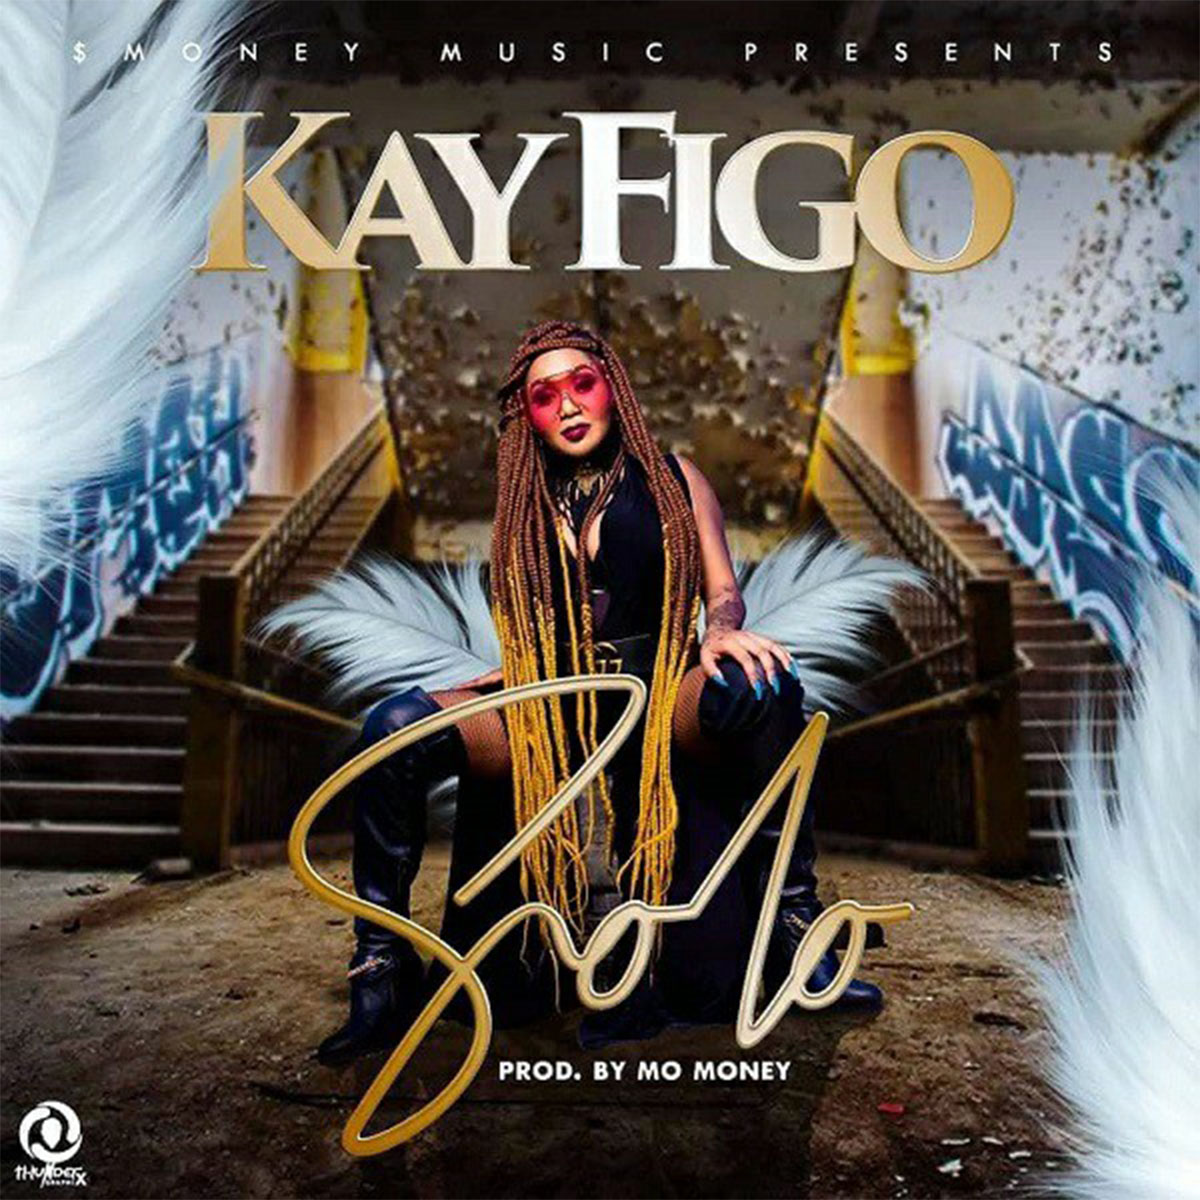 Kay Figo - Solo (Prod. Mo Money)